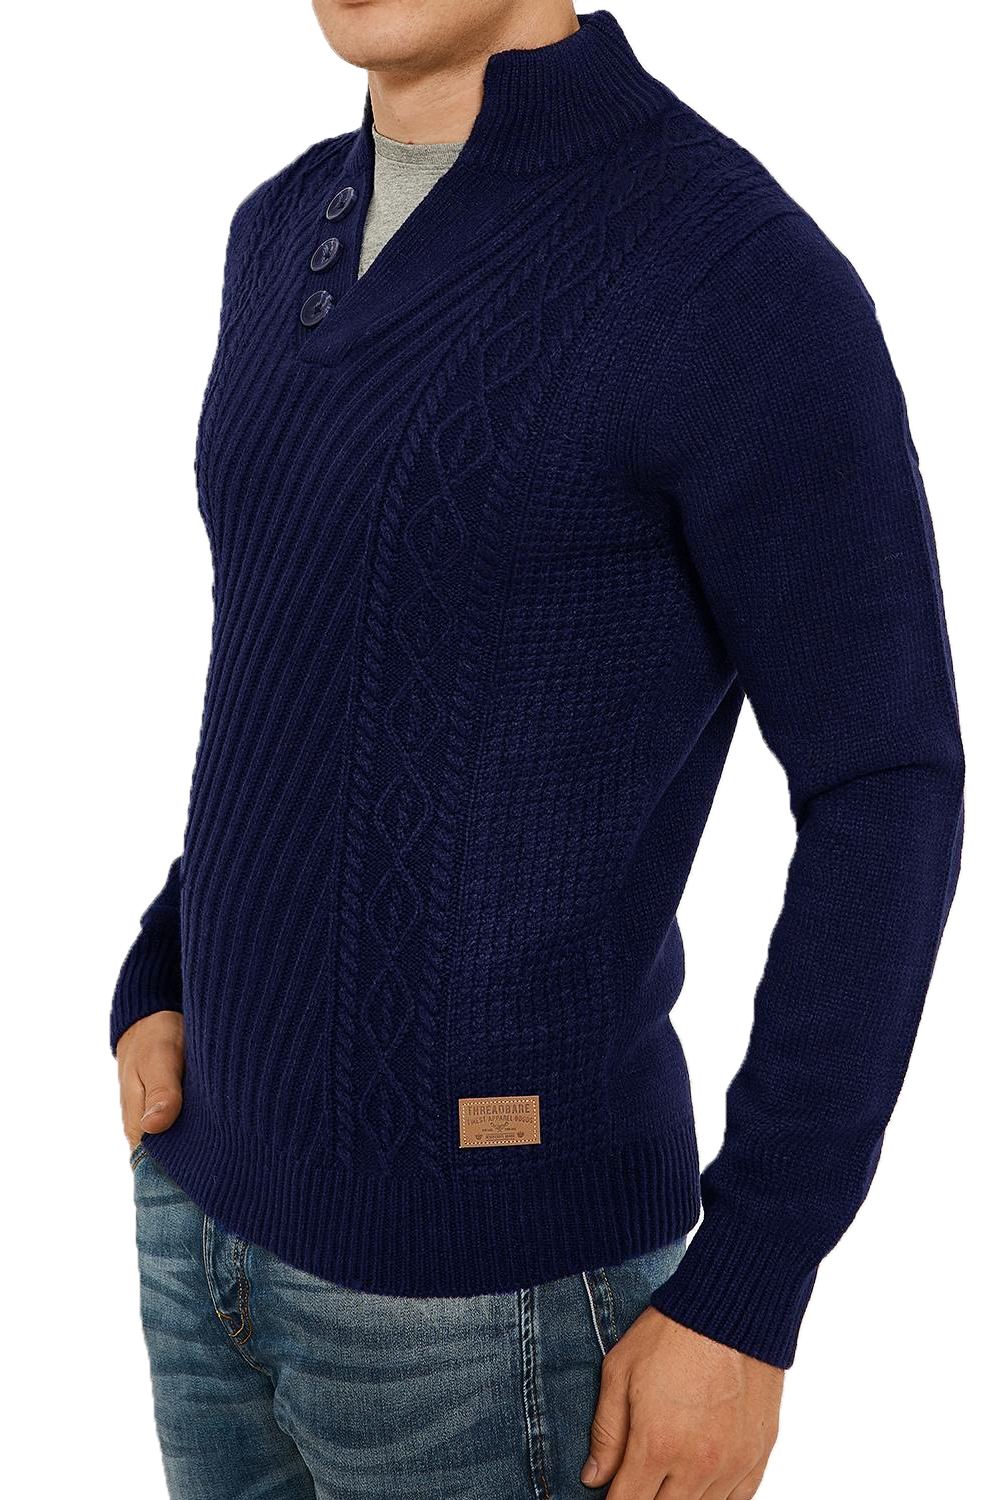 Threadbare-Wray-Mens-Top-Cable-Knited-Designer-Luxurious-Wool-Mix-Raglan-Jumpers thumbnail 15